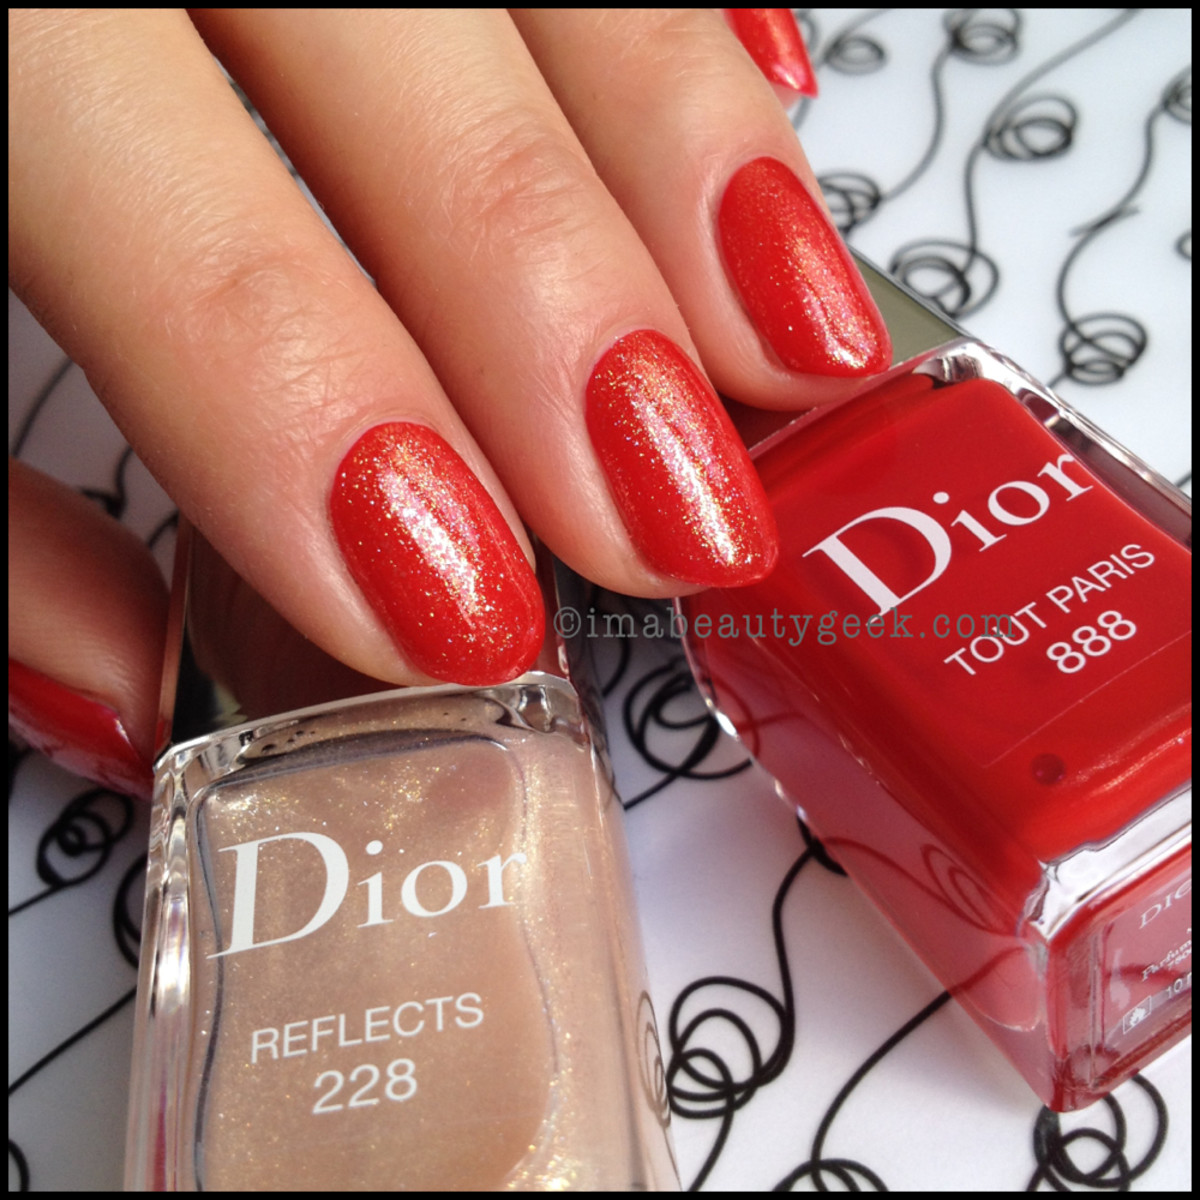 Dior Vernis Reflects 228 over Tout Paris 888